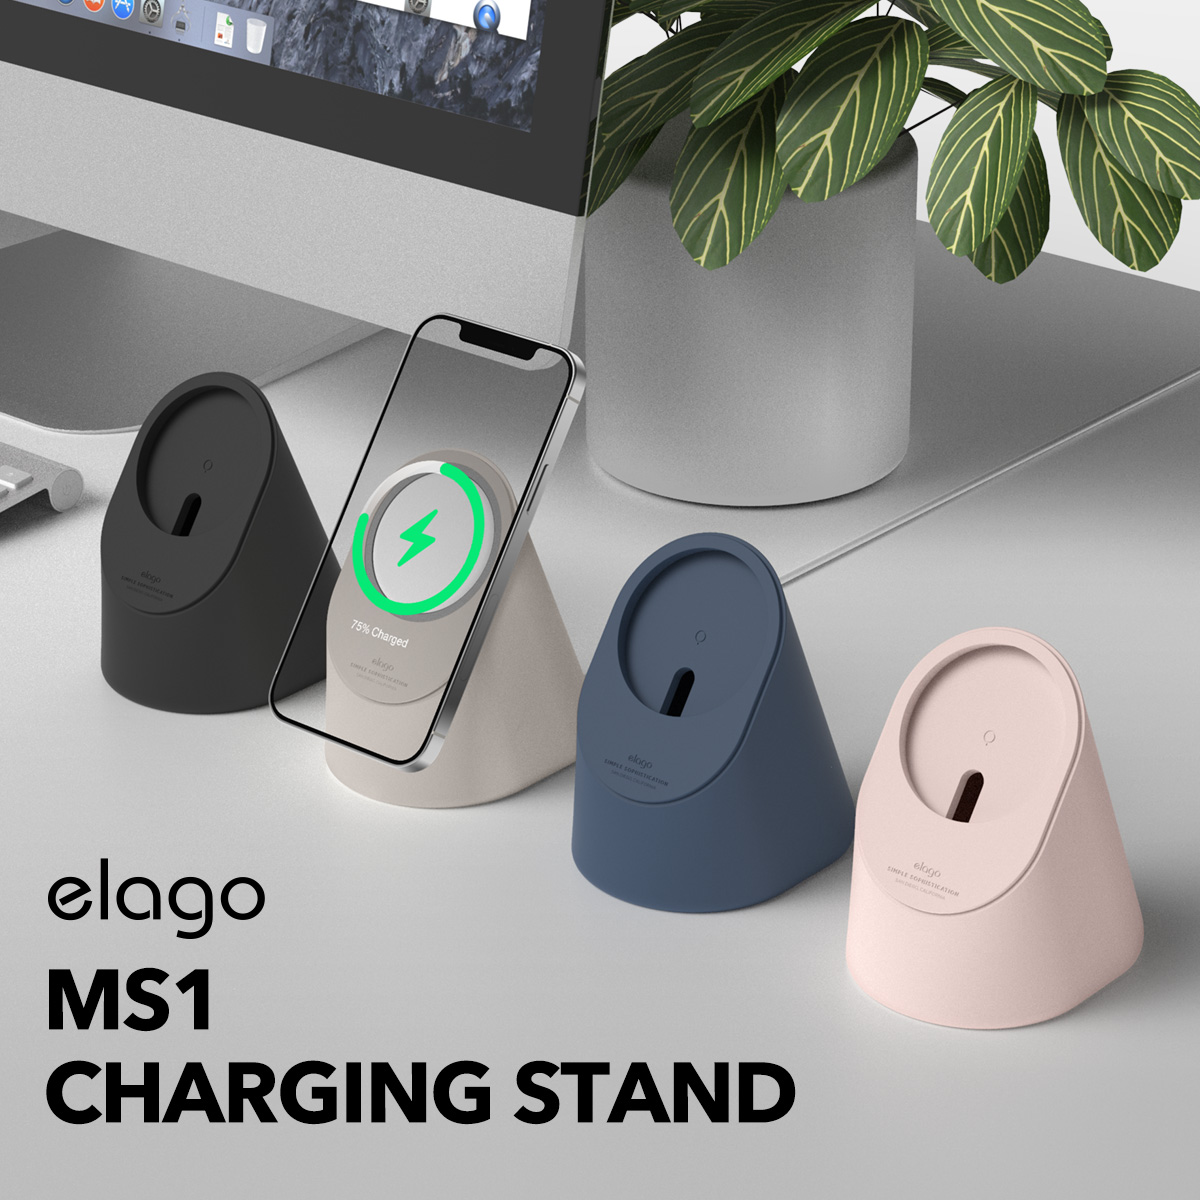 elago MS1 CHARGING STAND for iPhone12